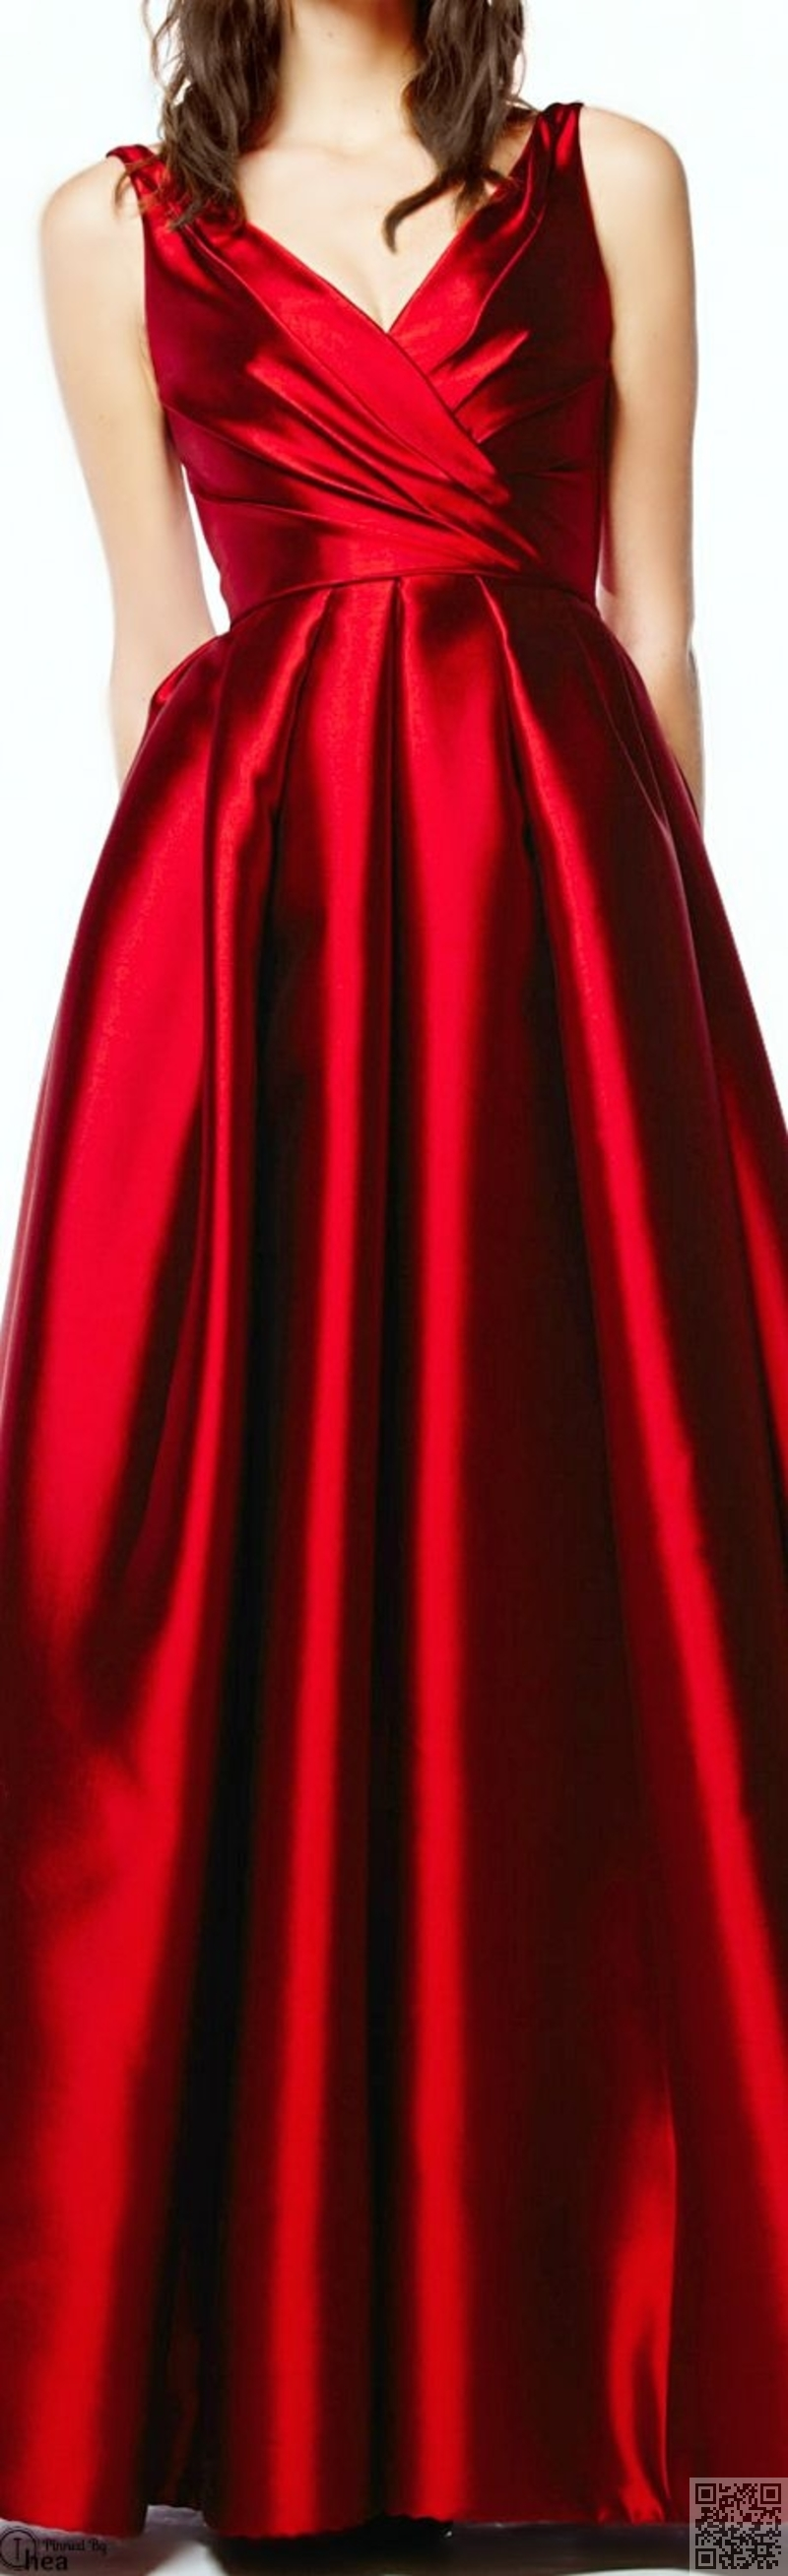 Shiny Material Red Dress Red Fashion Gorgeous Dresses [ 2616 x 800 Pixel ]